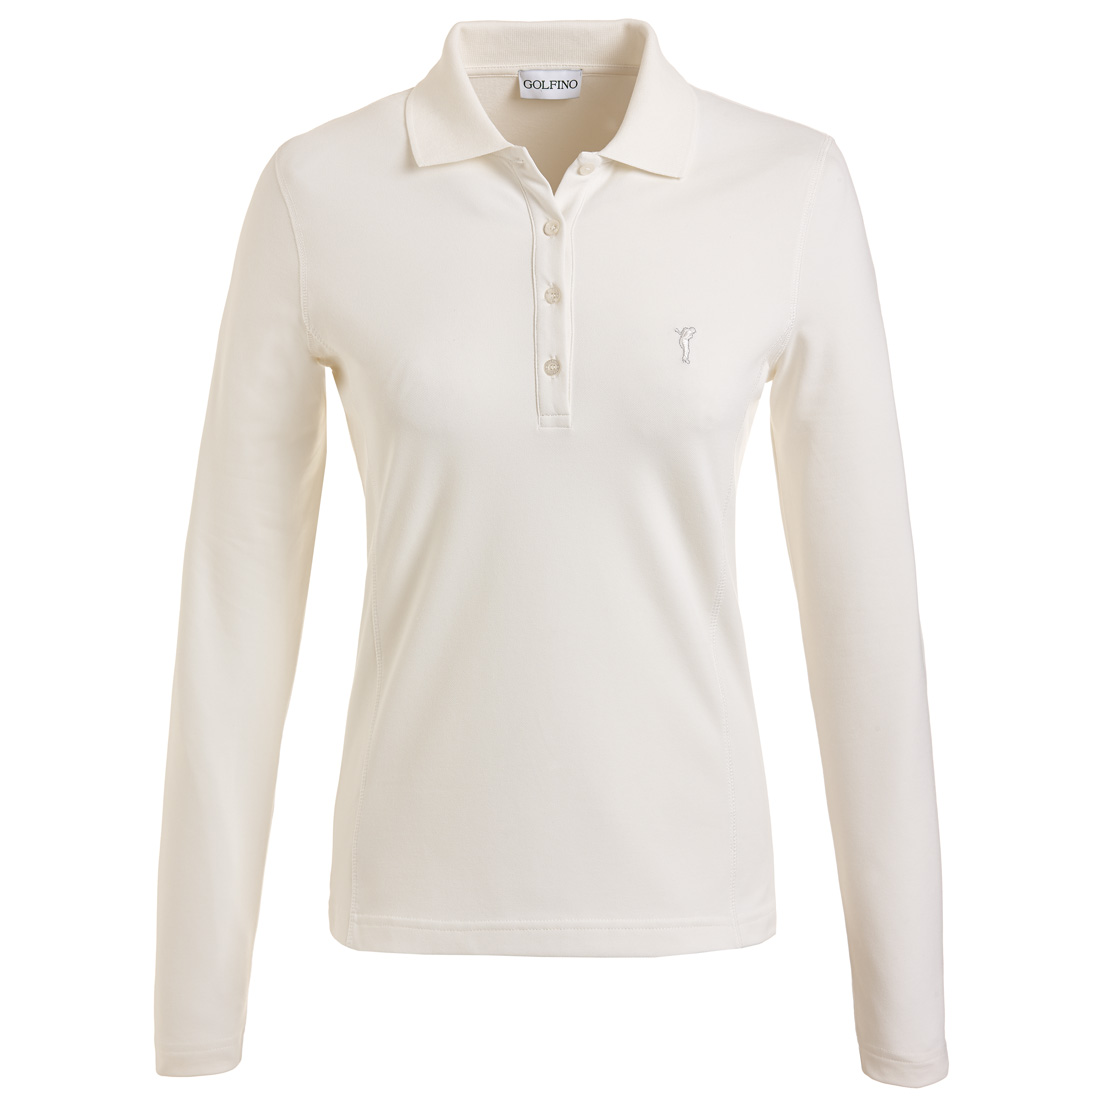 Damen Langarm Stretch-Golfpolo mit Sun Protection